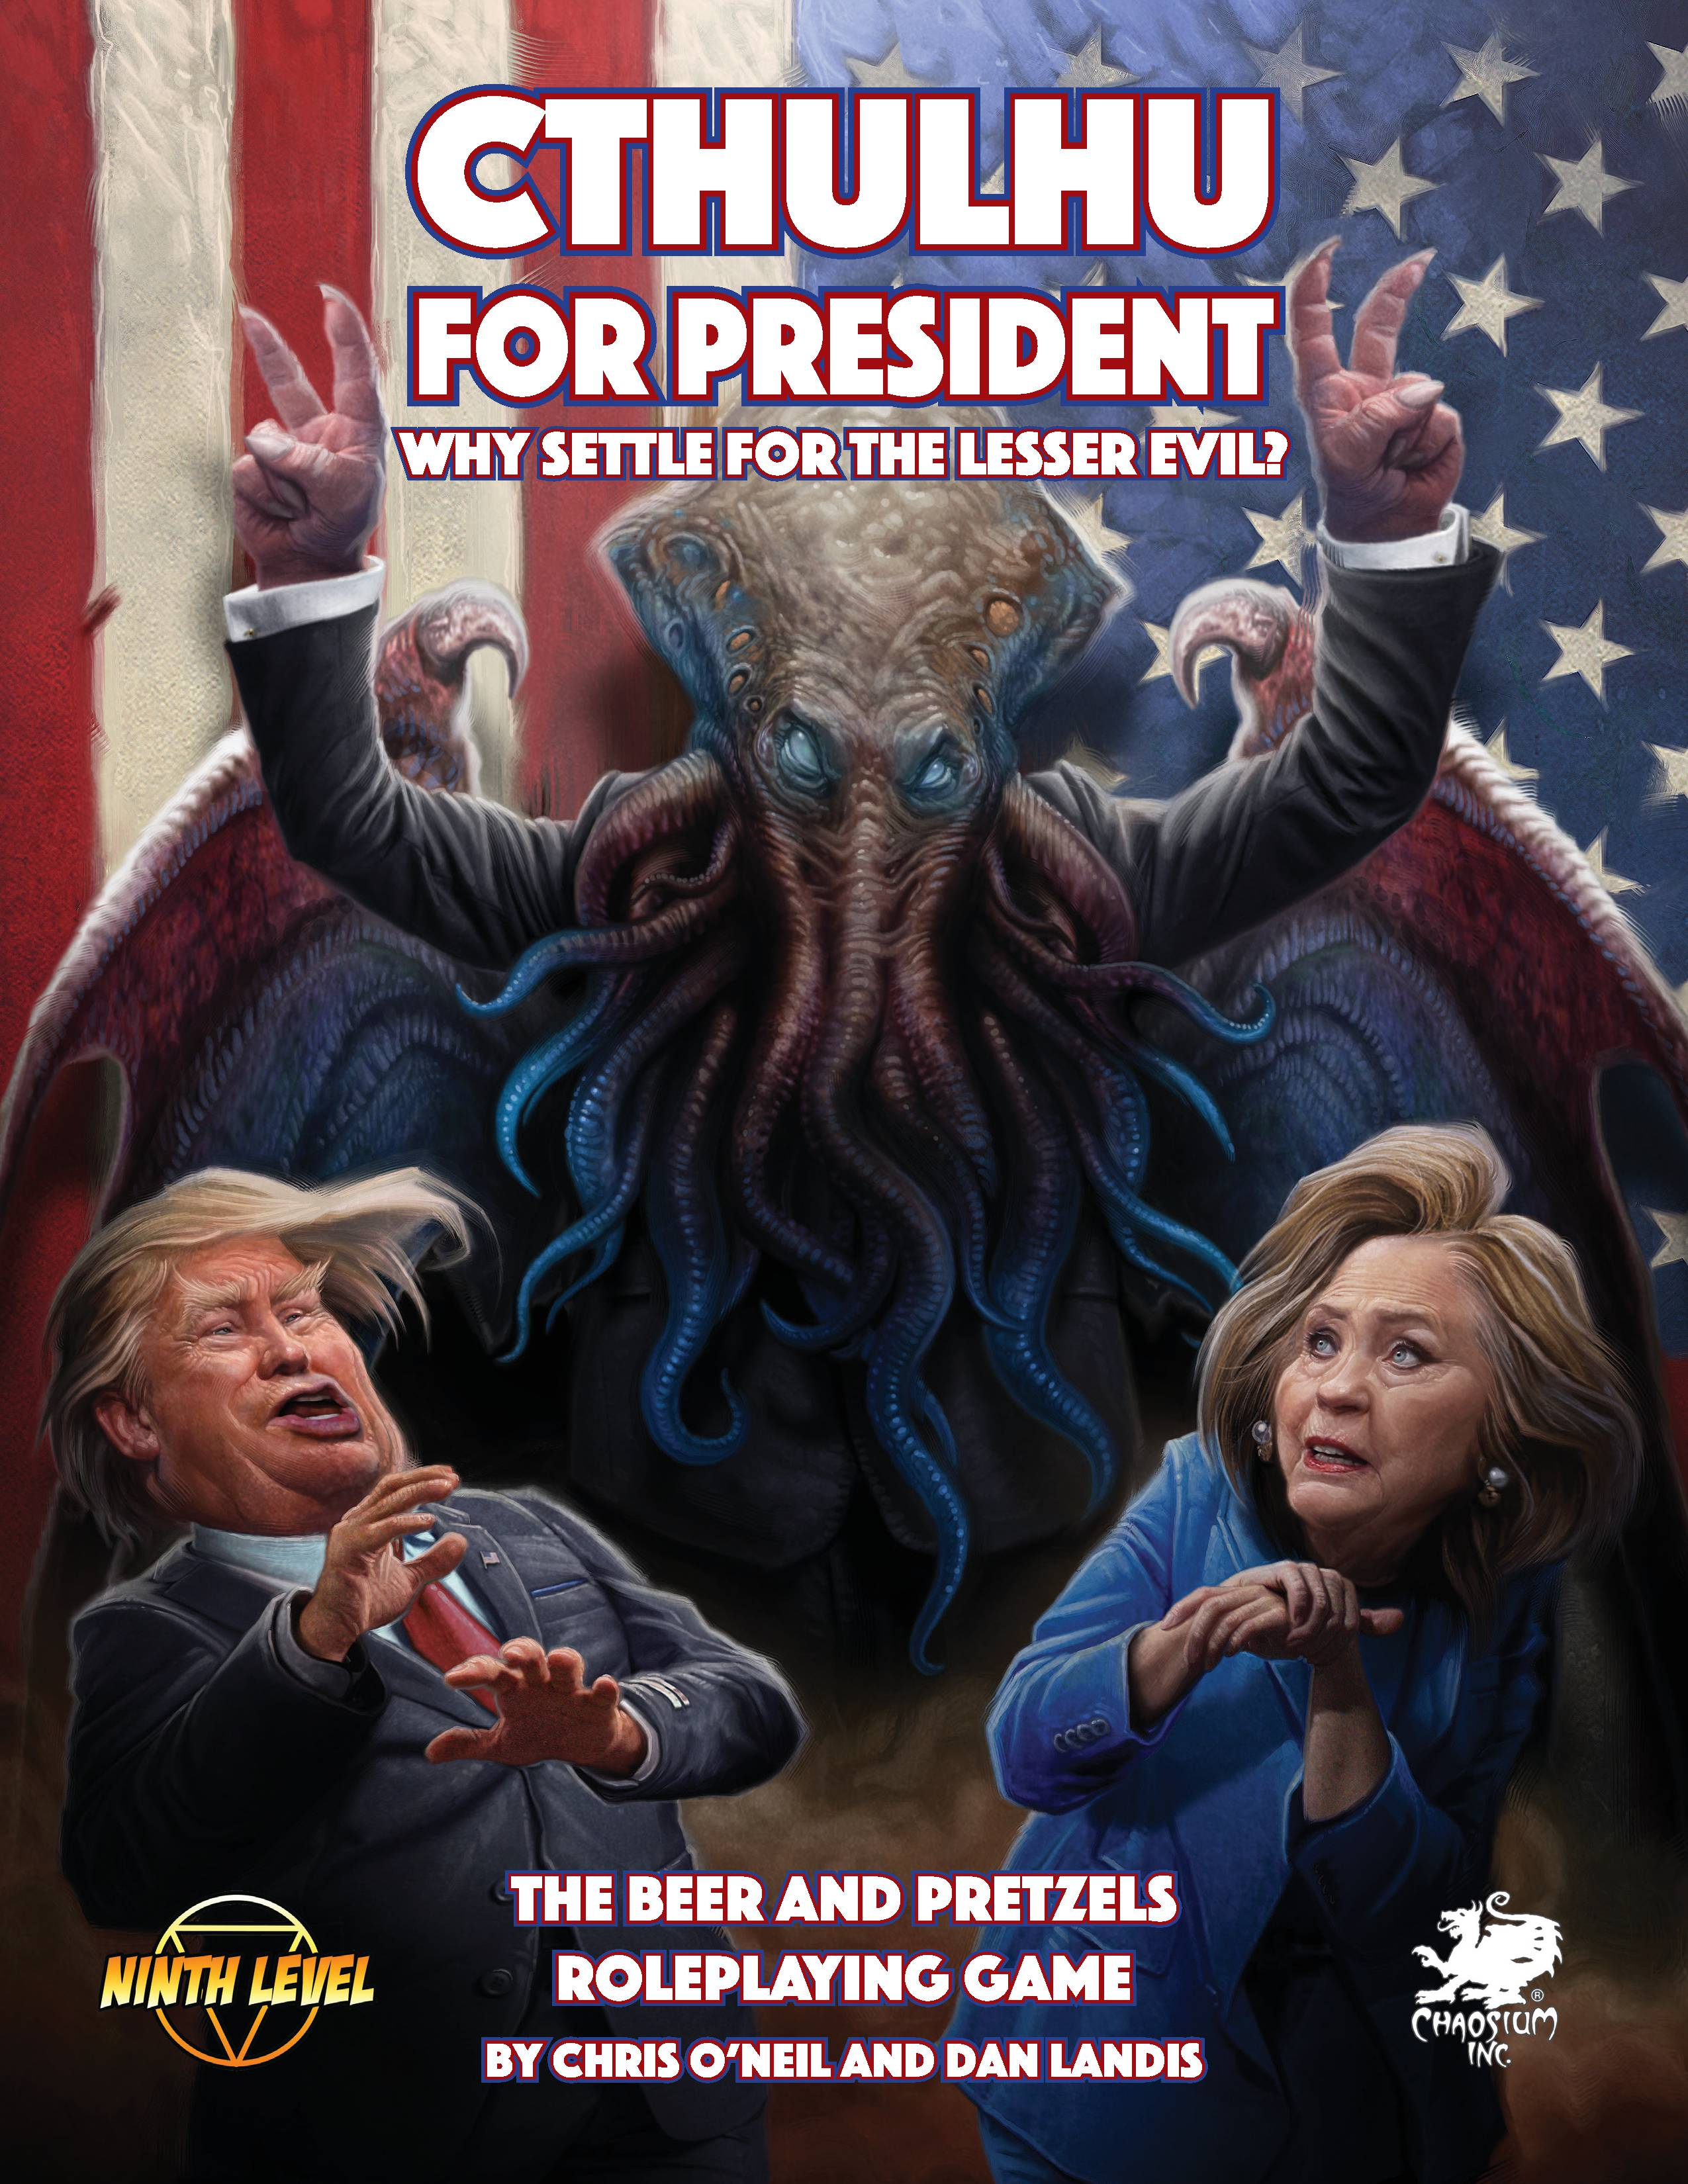 cthulhu-for-president-front-cover.jpg